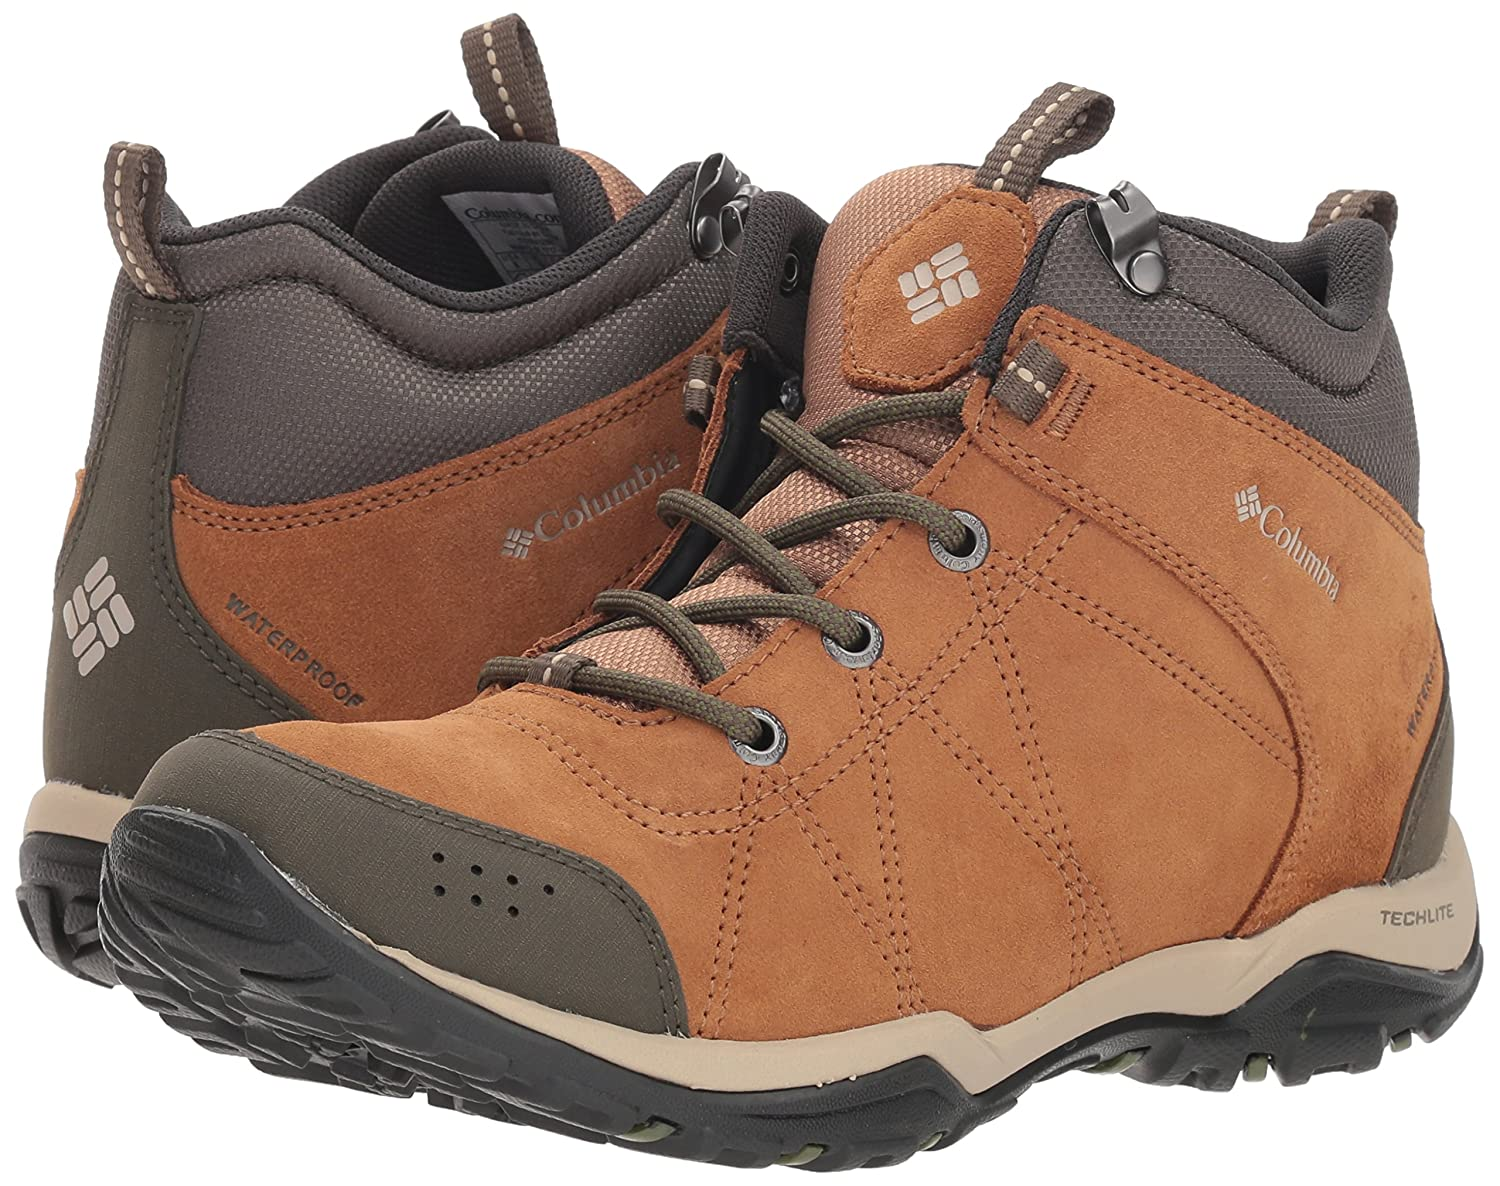 Columbia Women's Fire Venture Mid Suede Waterproof Hiking Boot B0787H2KKD 5 B(M) US|Elk, Ancient Fossil